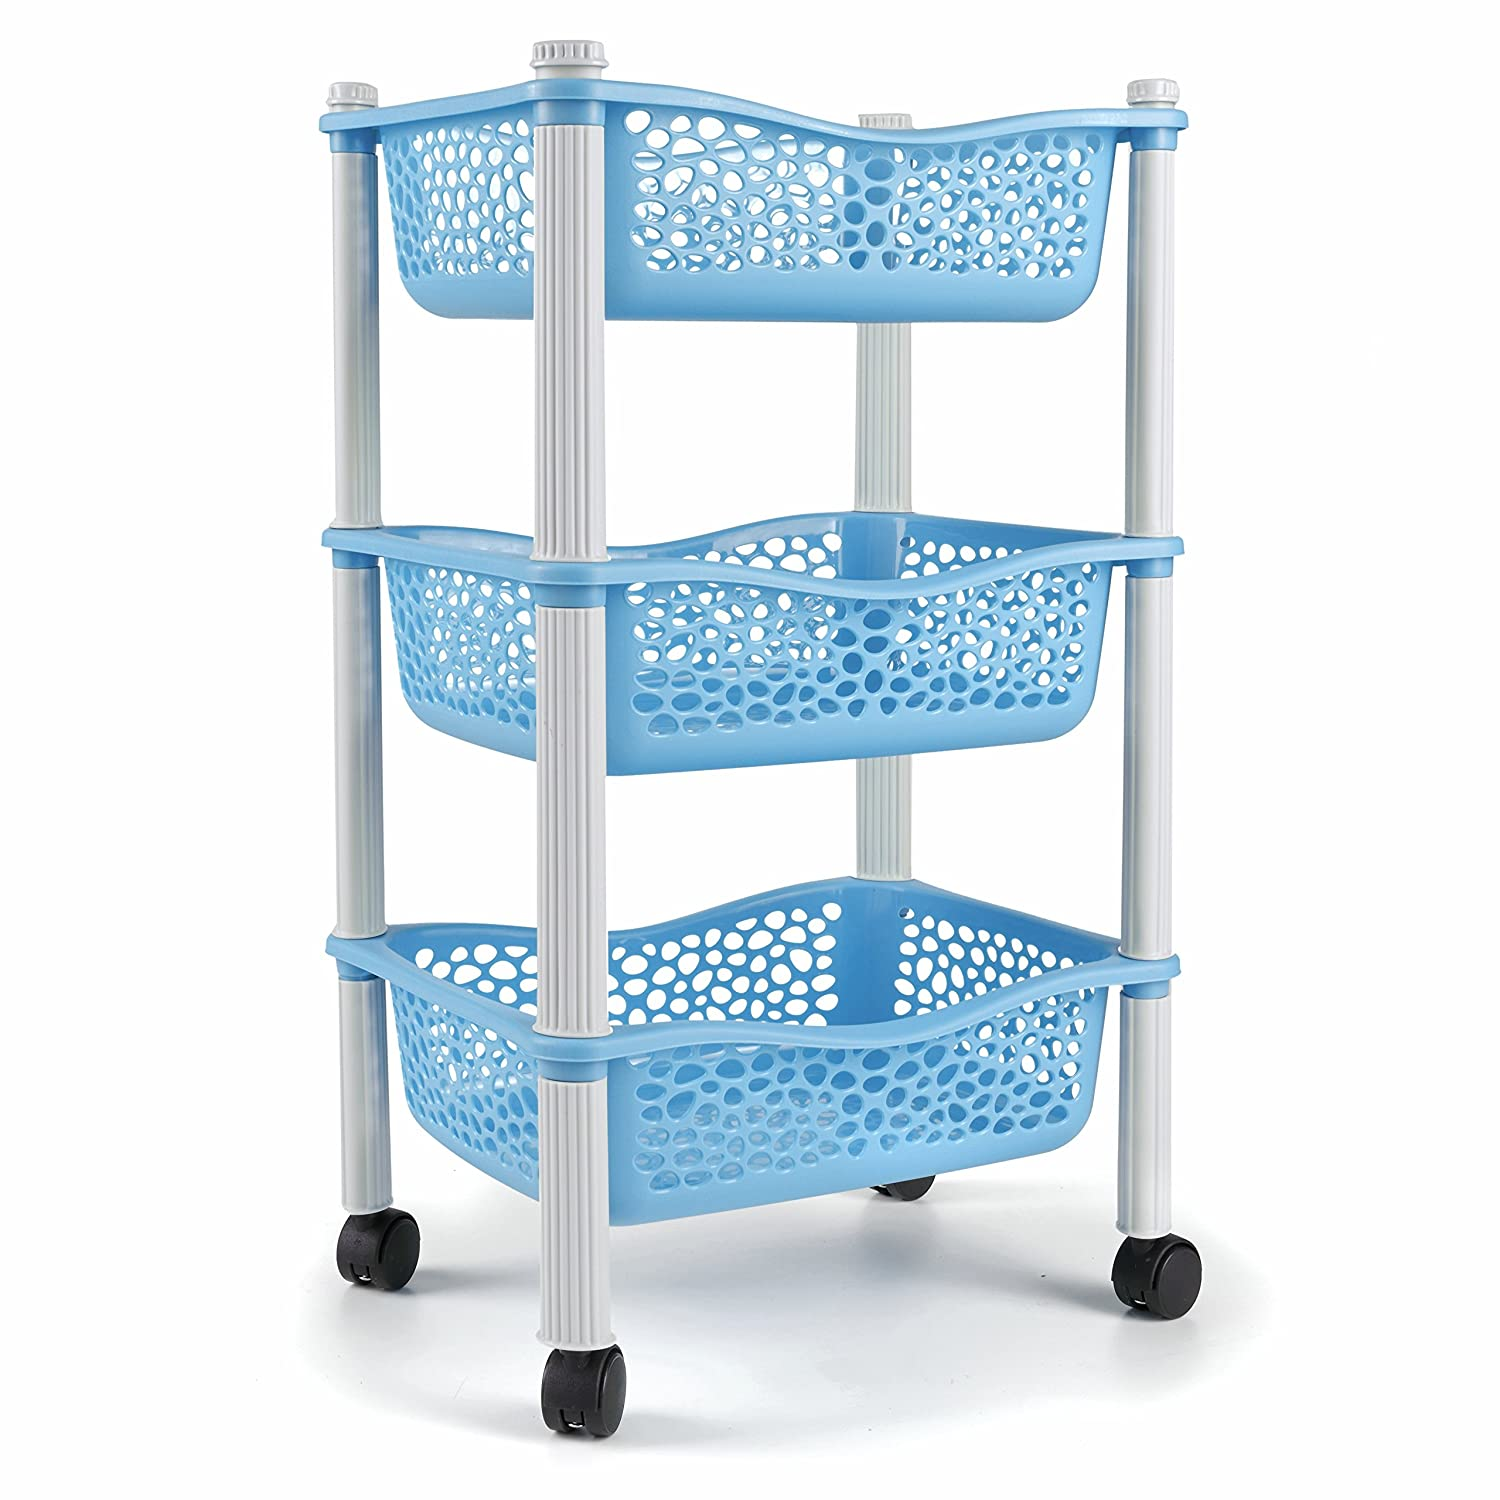 Kitchen storage trolley cart with baskets and wheels Fruit Vegetable ...